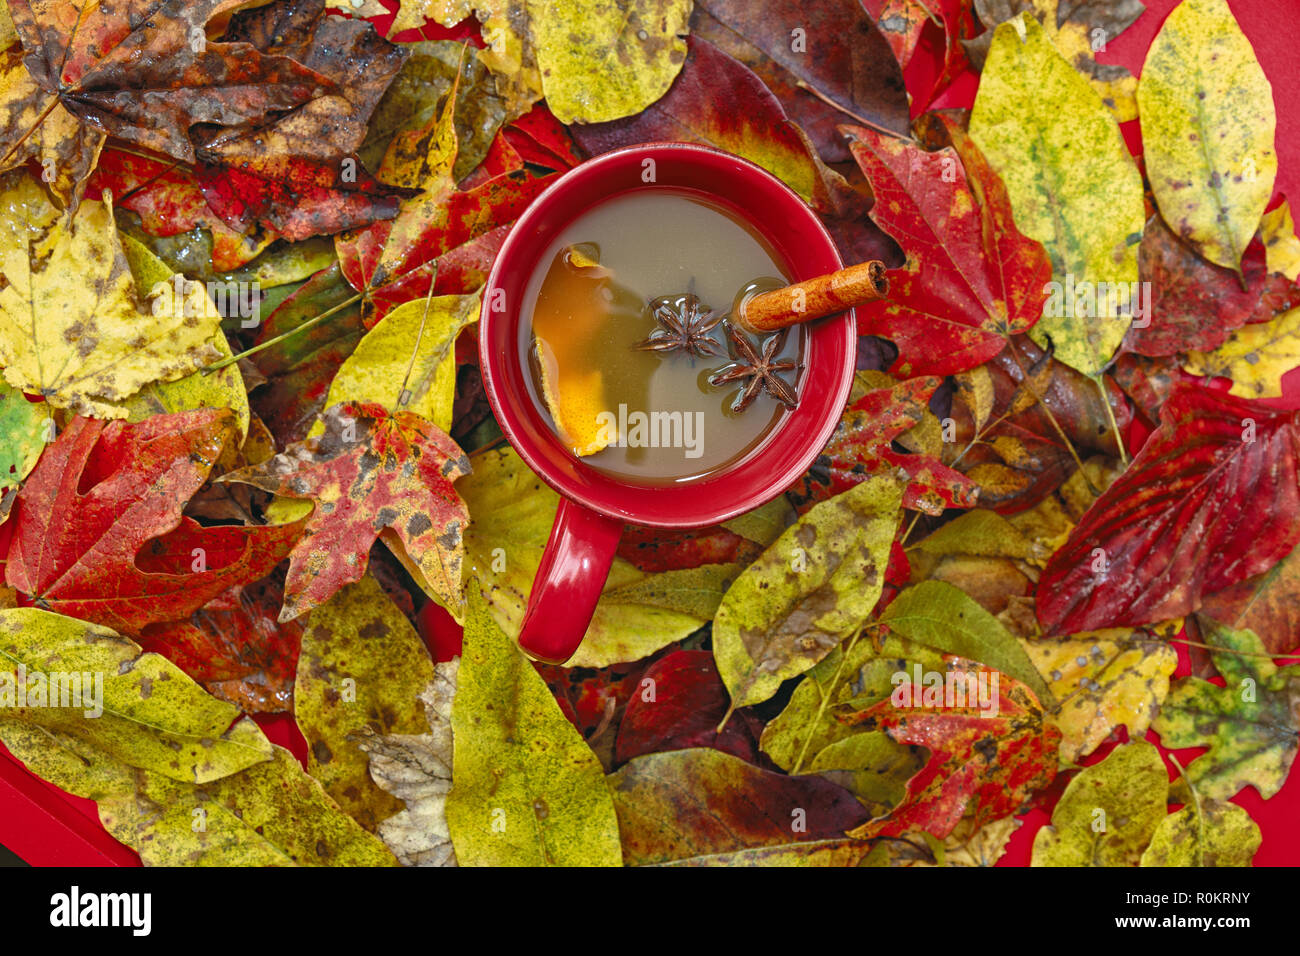 Red, Yellow and Orange Autumn Leaves for Background. Stock Photo